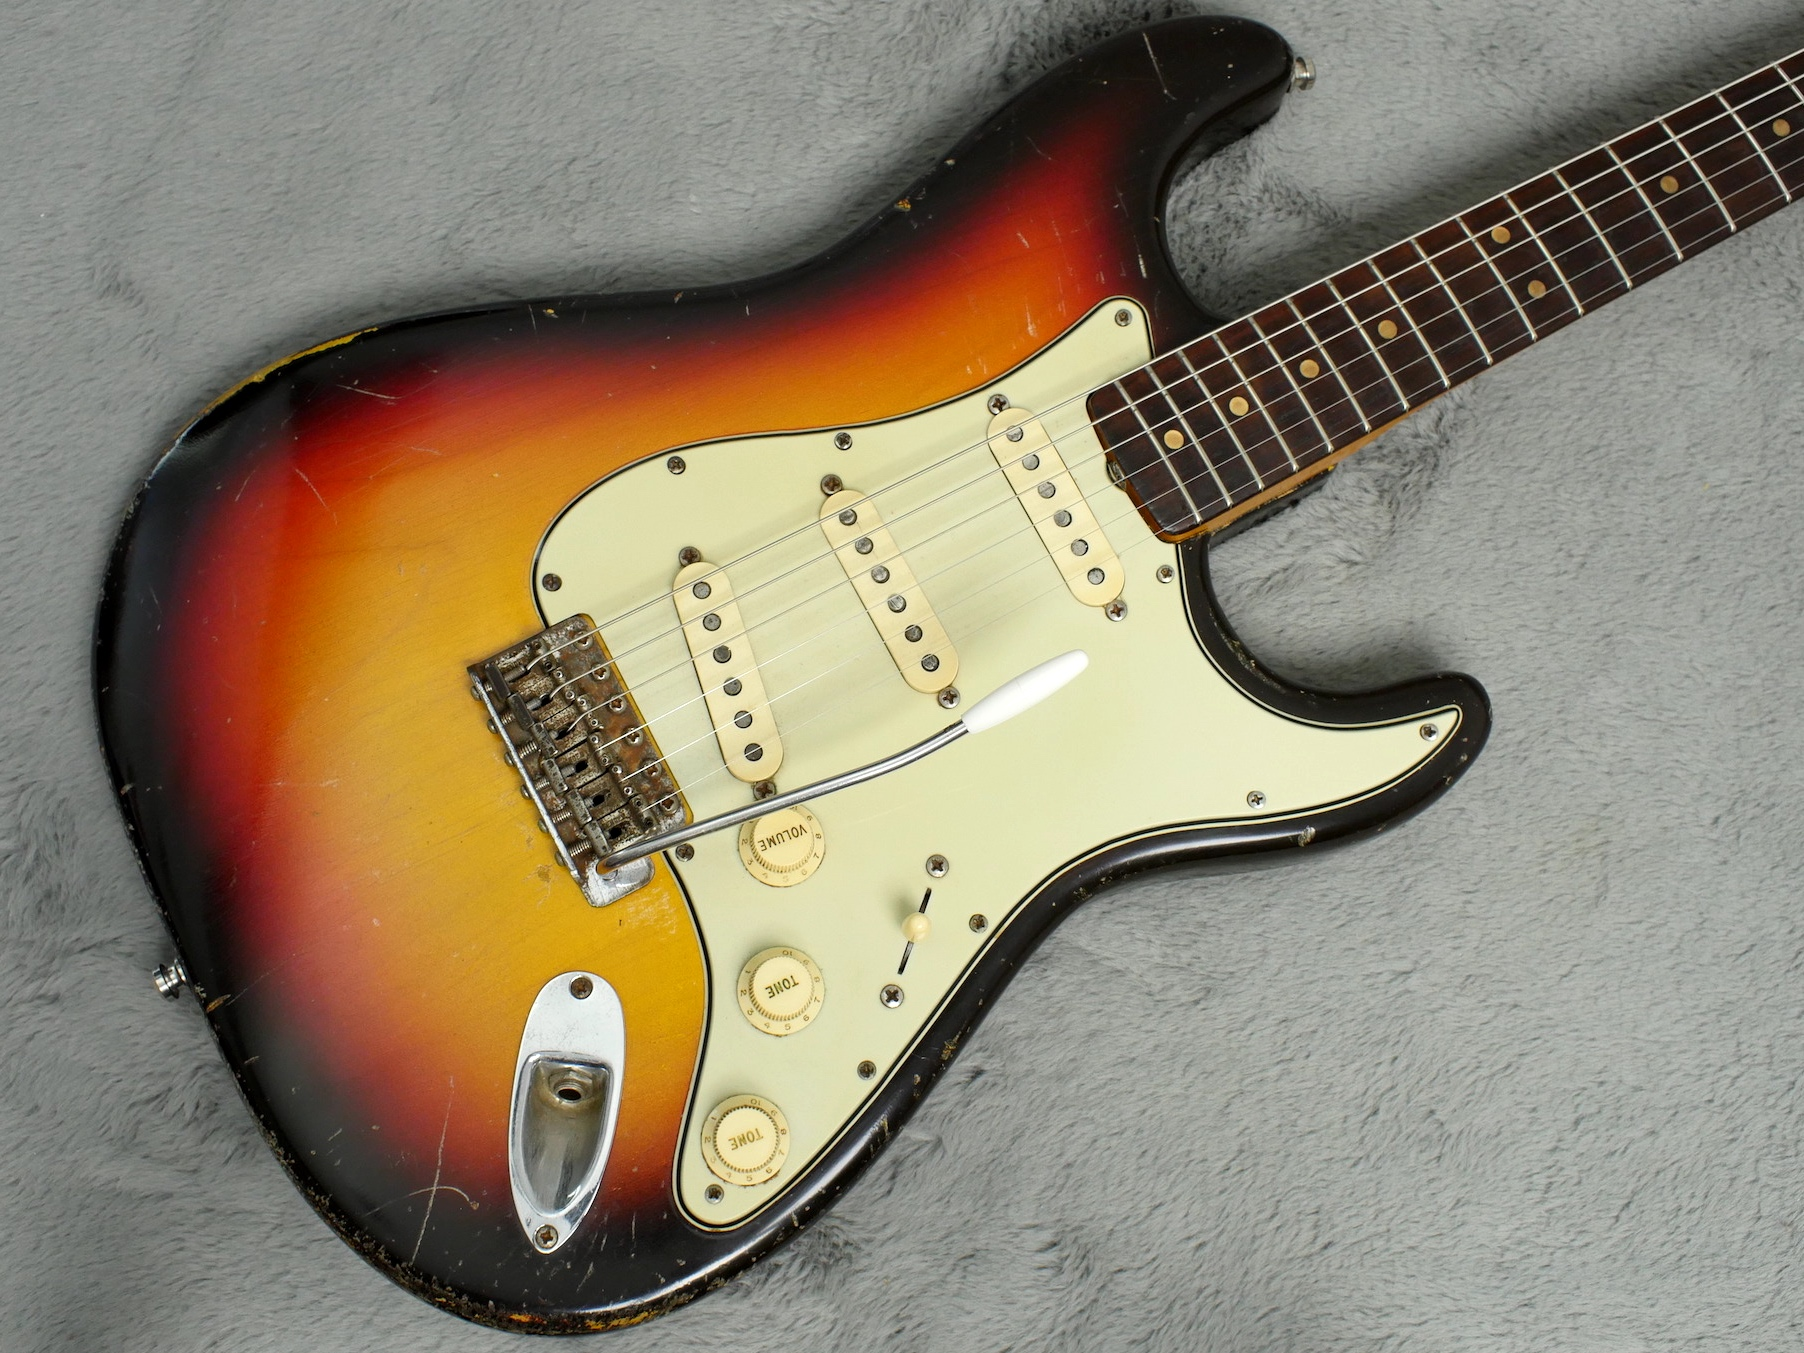 1963/4 Fender Stratocaster Clive Brown body only Refin + HSC